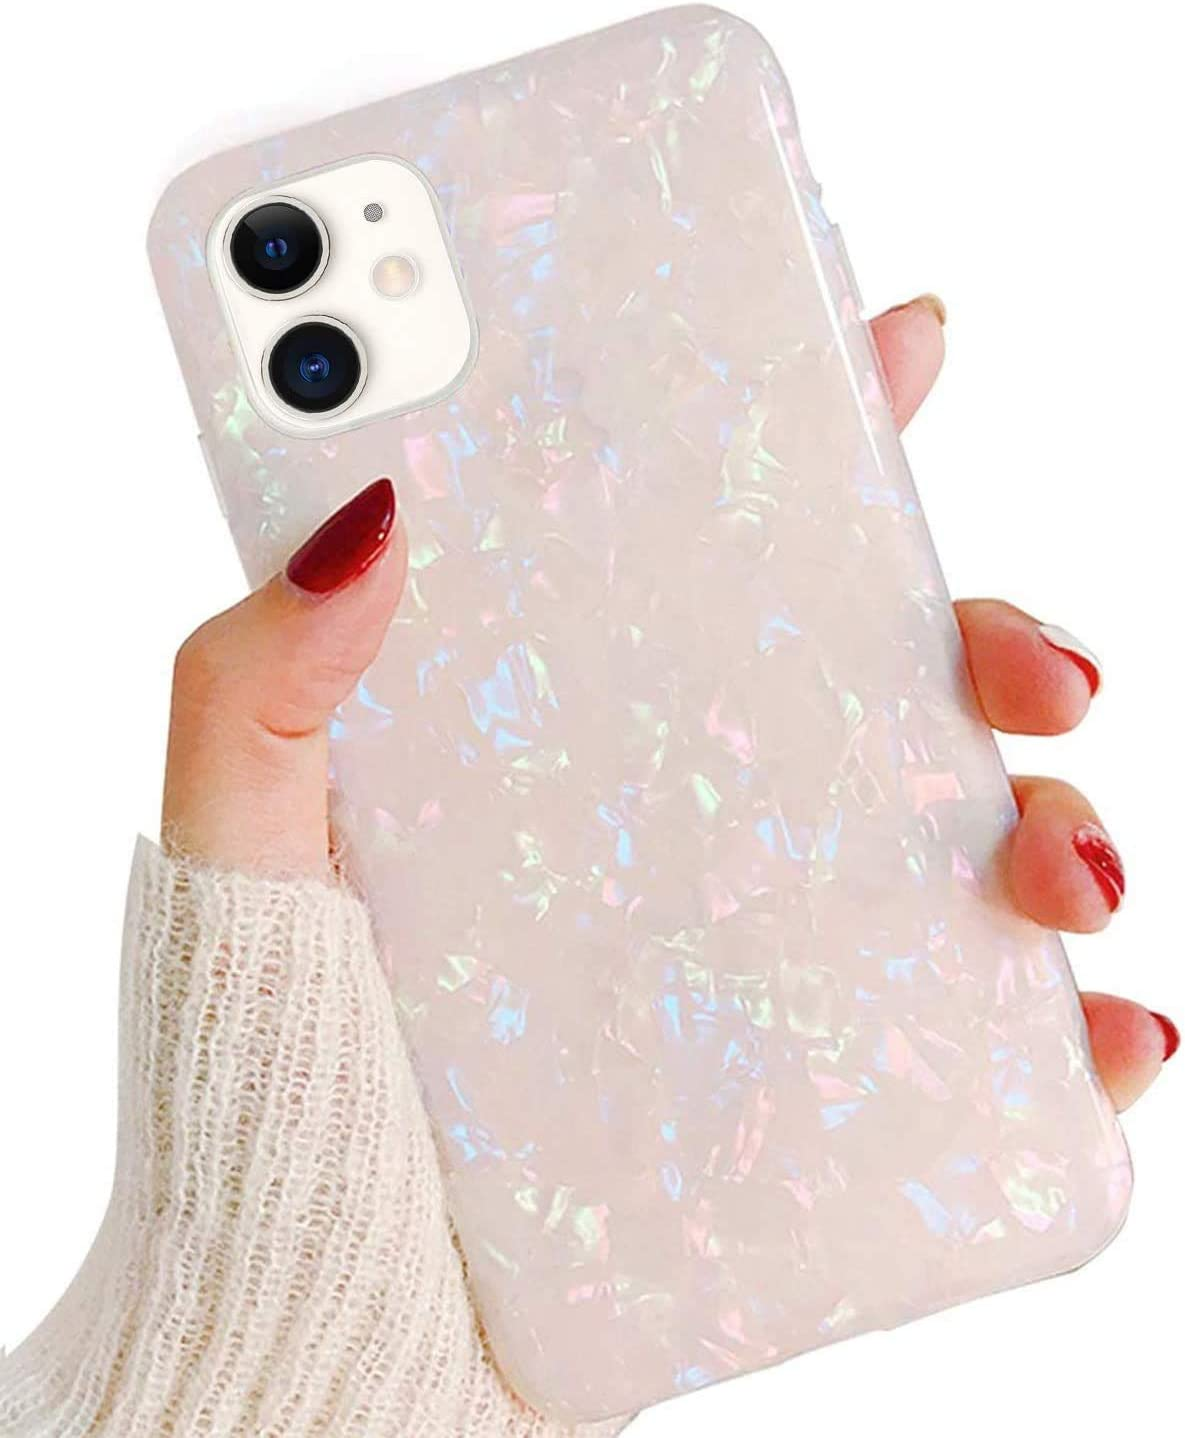 "Hapitek Compatible with iPhone 12 Case Marble Case for iPhone 12 Pro for Girls Women Slim Soft Flexible TPU Protective Cover for iPhone 12/12 Pro 6.1"" 2020"